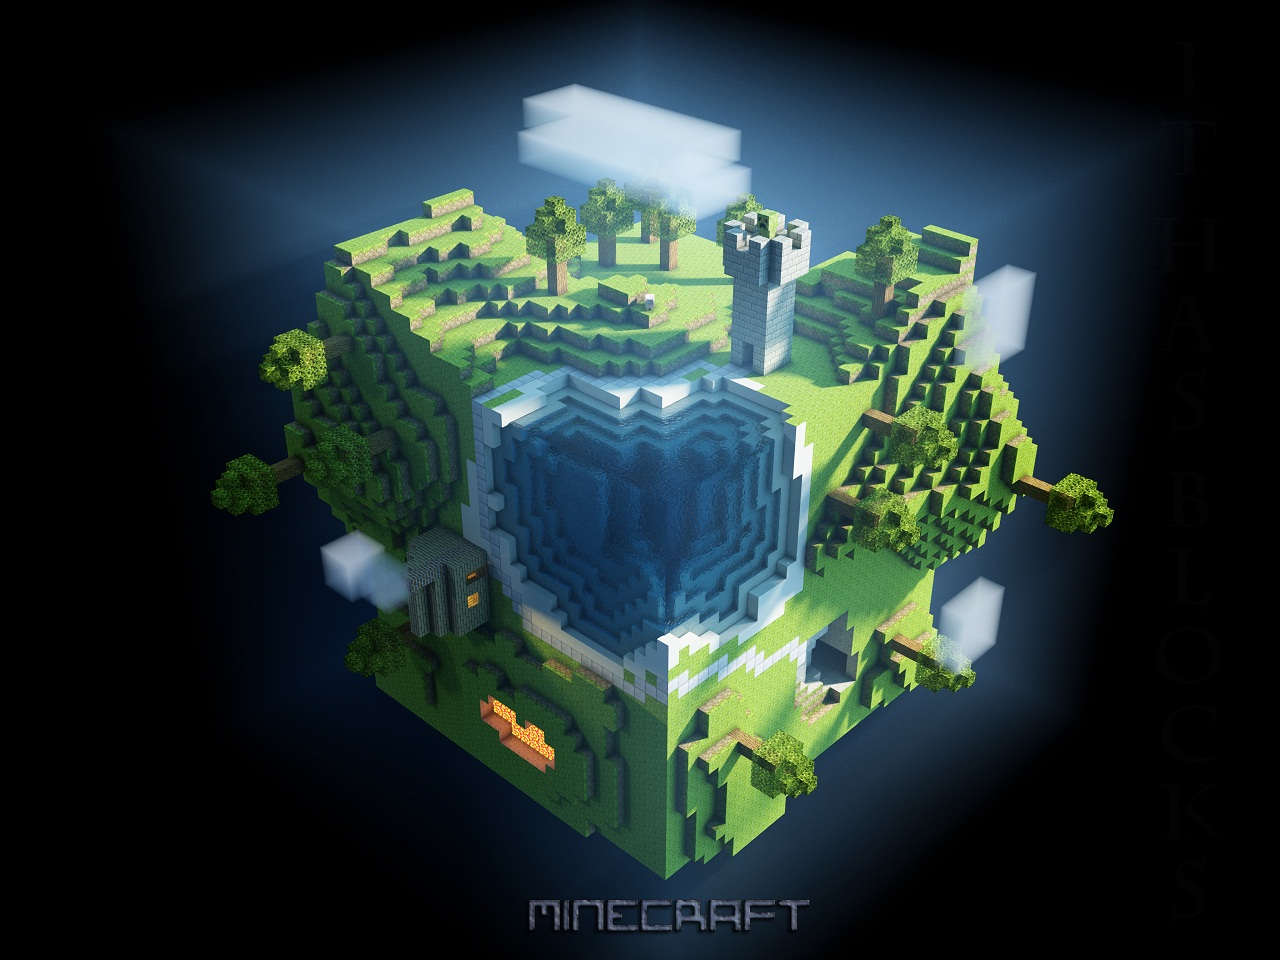 35 Awesome Minecraft wallpapers in HD 1 Design Utopia Trend 1280x960